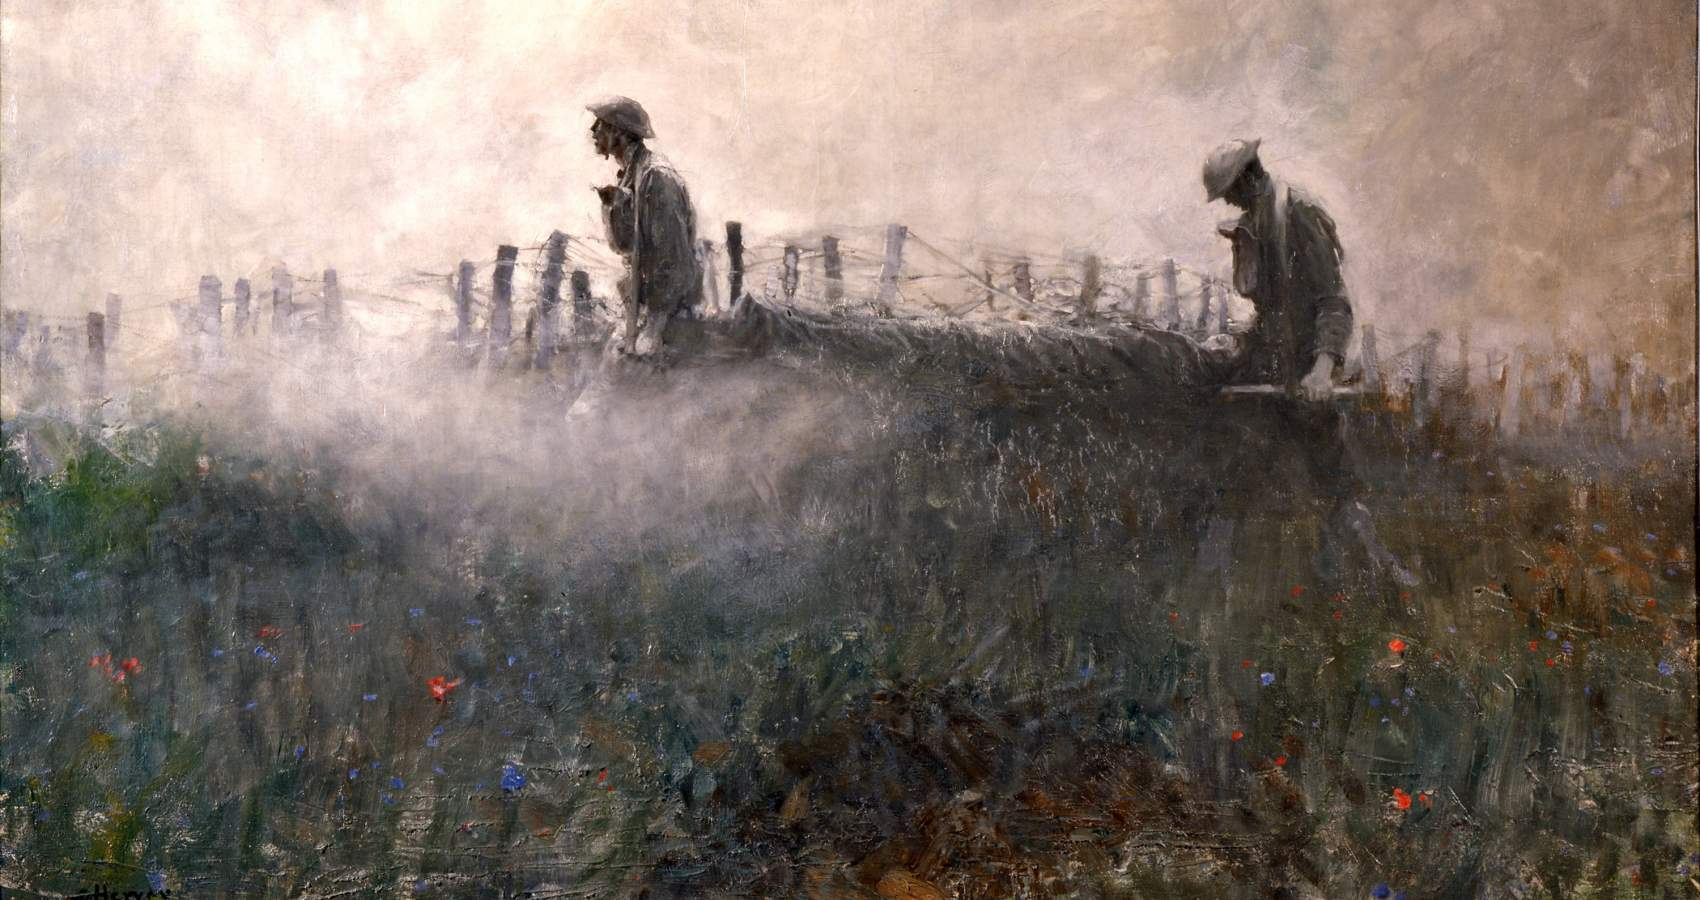 Painting of soldiers in field